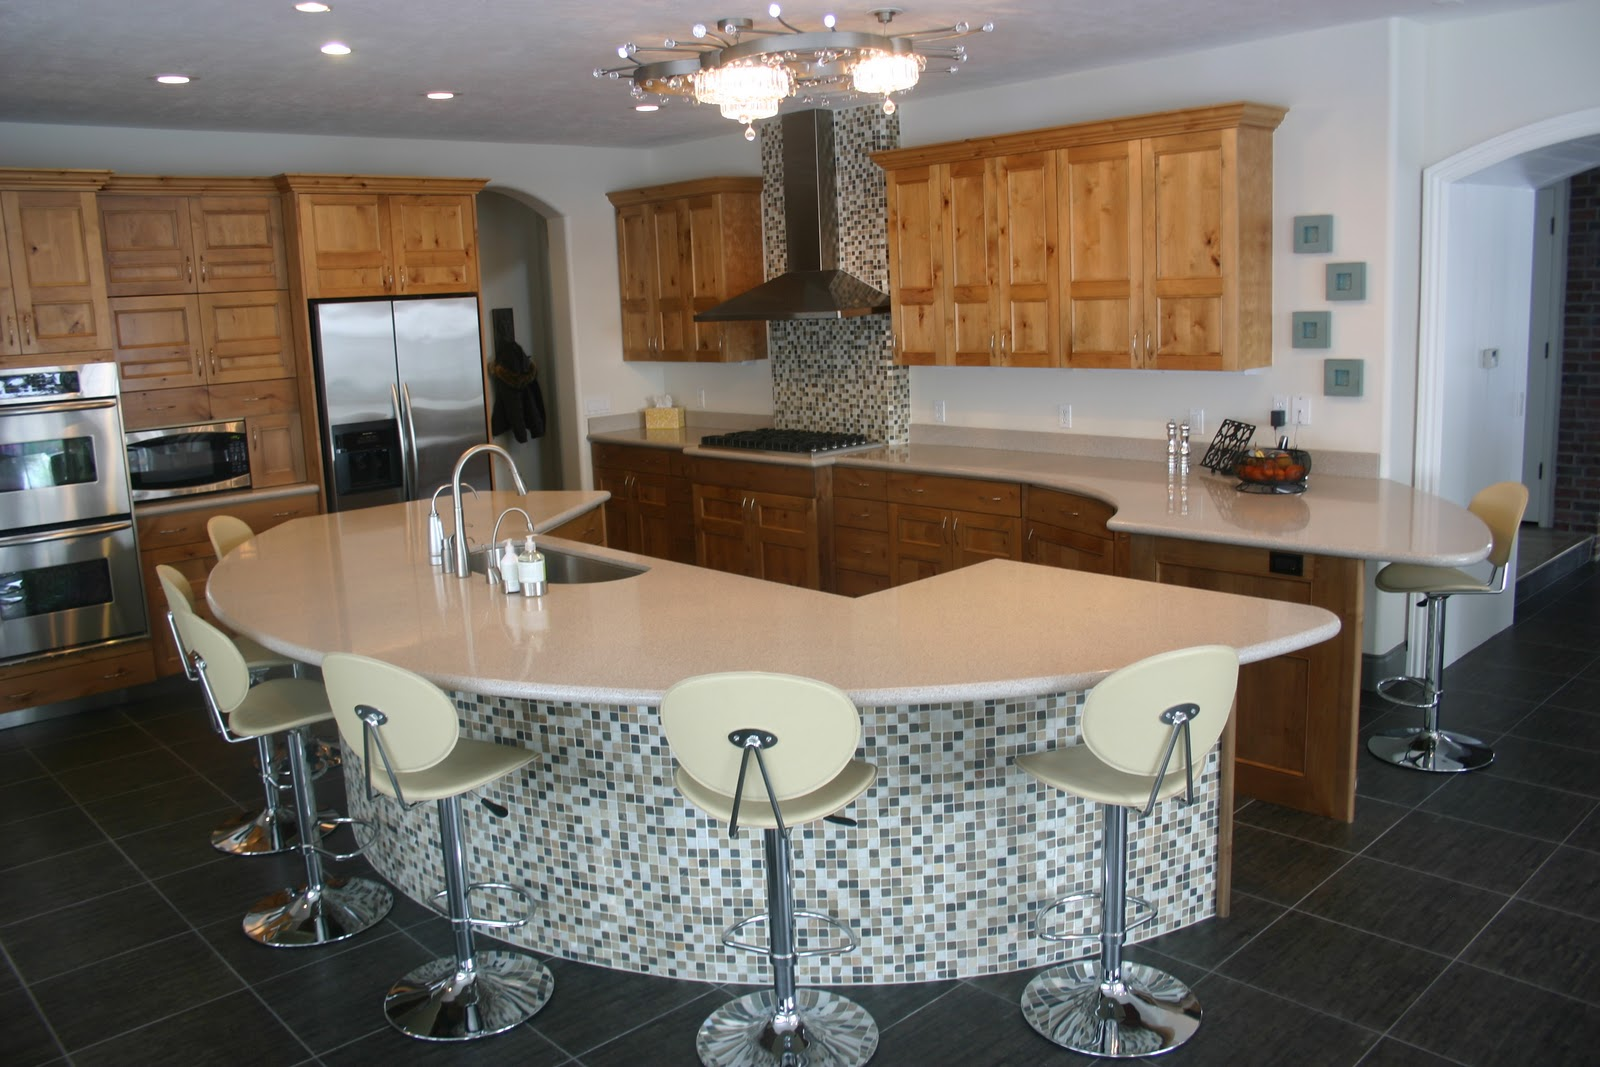 The Granite Gurus Silestone Kitchen Countertops